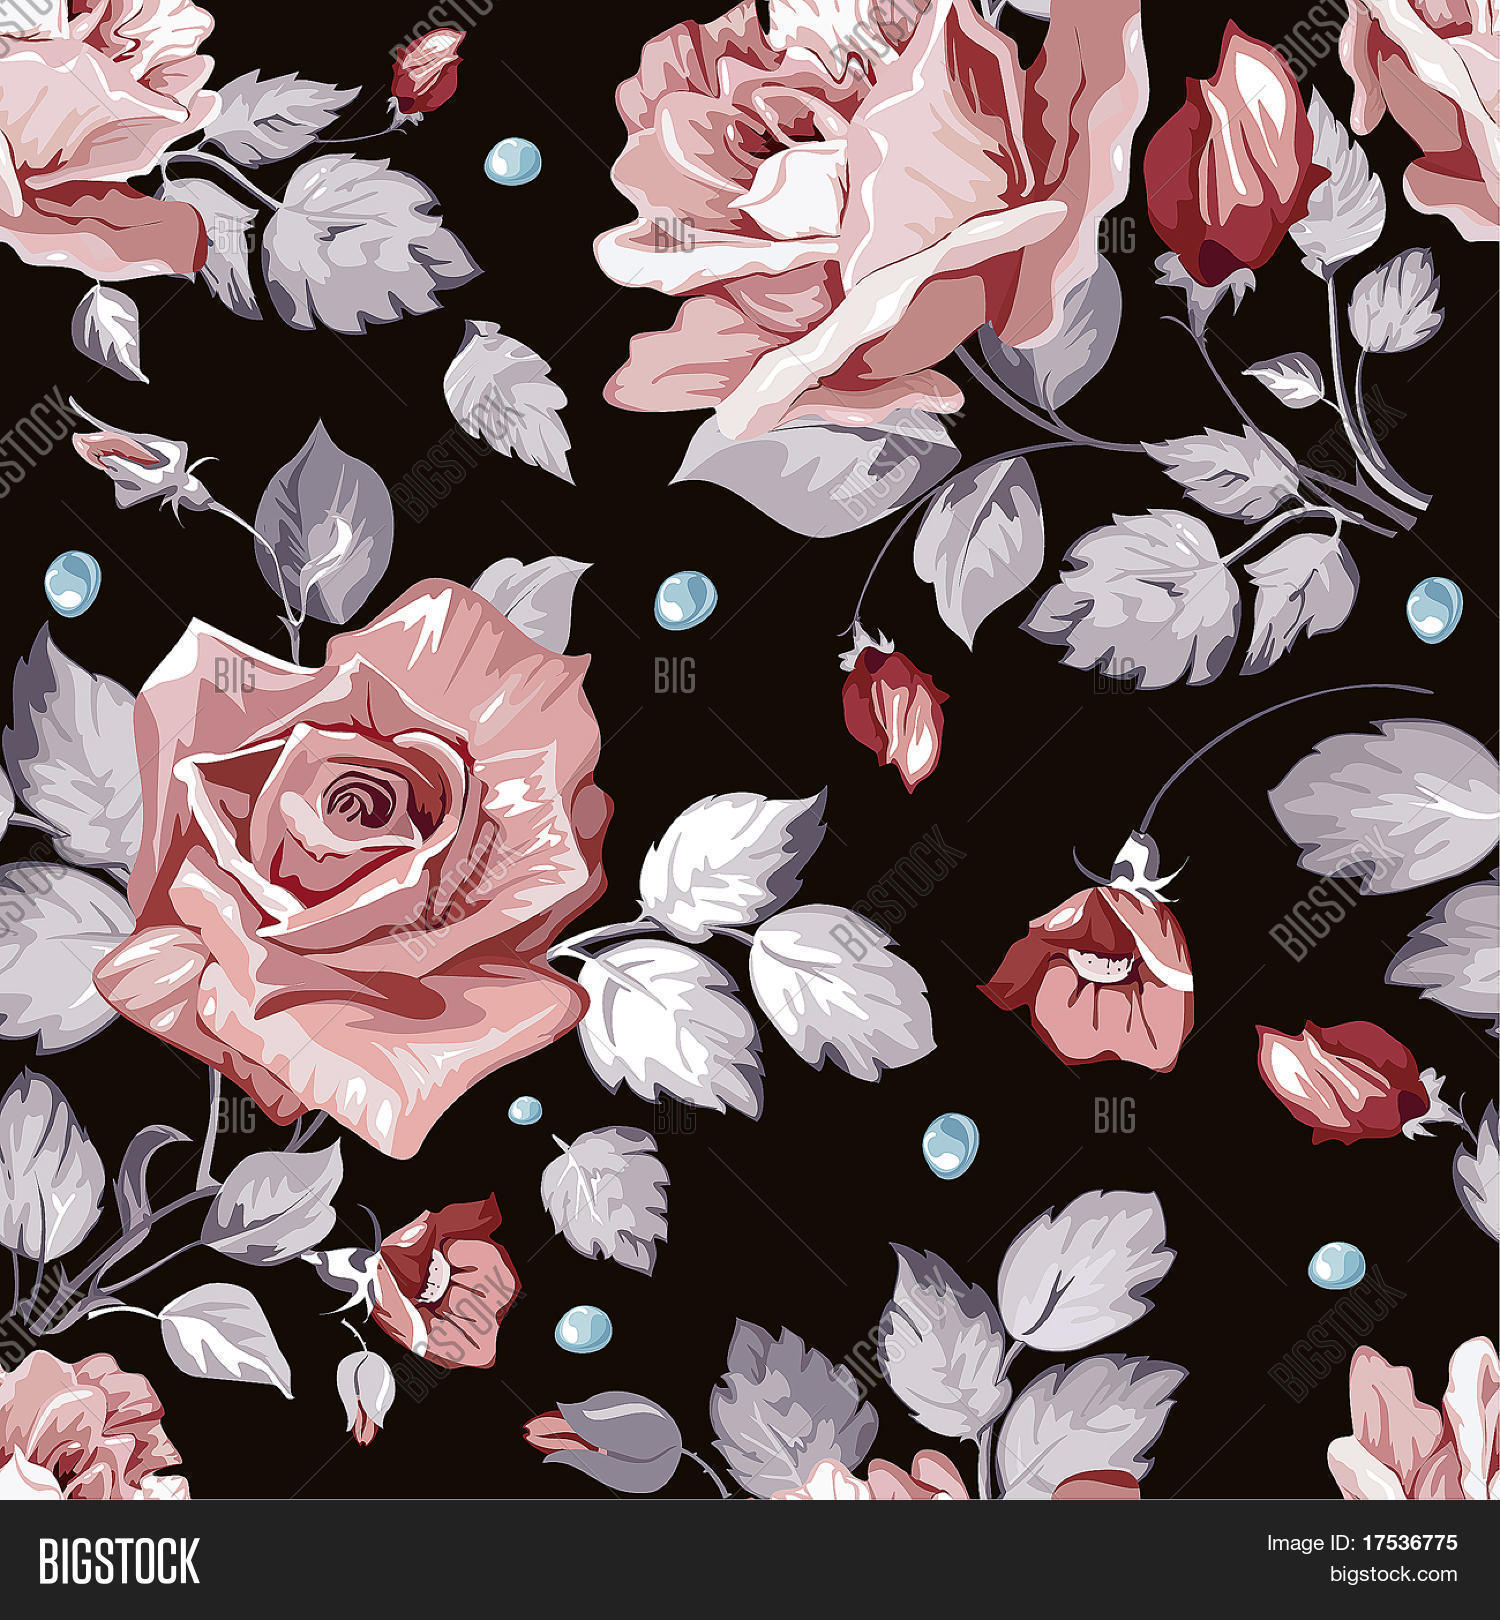 3d Blossoms Live Wallpaper Elegance Seamless Wallpaper Vector Amp Photo Bigstock